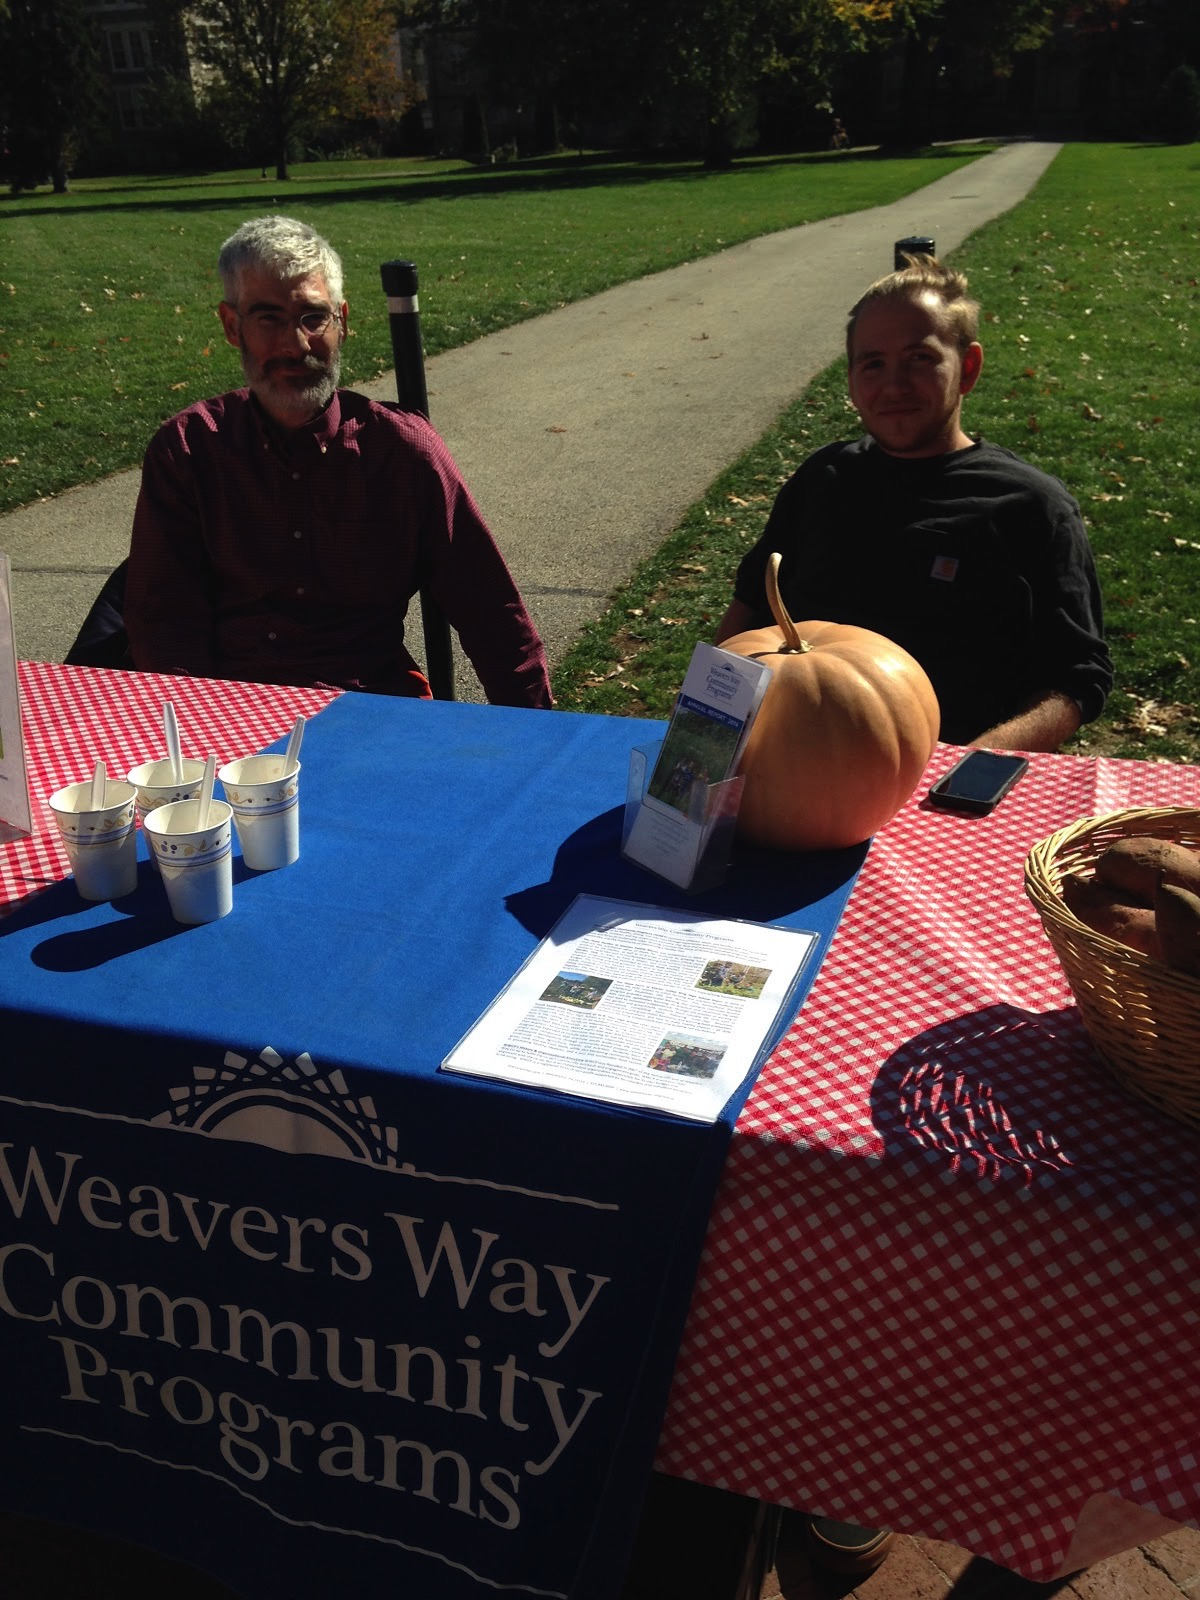 Representatives from Weavers Way Community Programs.